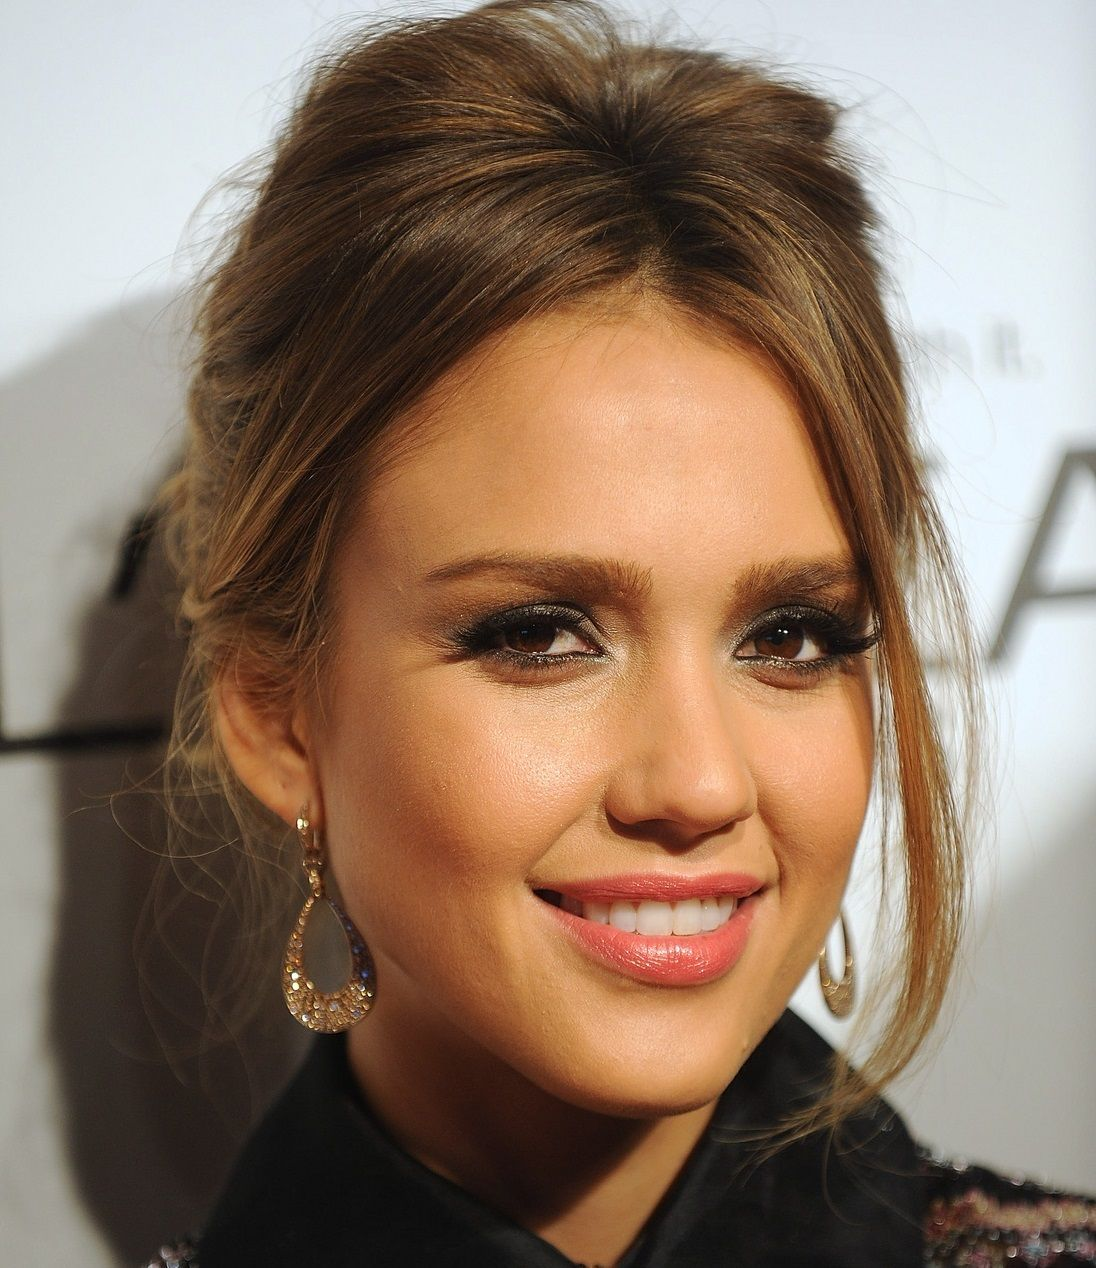 jessica alba наркозjessica alba 2017, jessica alba 2016, jessica alba style, jessica alba films, jessica alba hair, jessica alba movies, jessica alba street style, jessica alba wiki, jessica alba instagram, jessica alba net worth, jessica alba 2007, jessica alba make up, jessica alba site, jessica alba filmography, jessica alba wikipedia, jessica alba style 2017, jessica alba kino, jessica alba наркоз, jessica alba 2015, jessica alba imdb